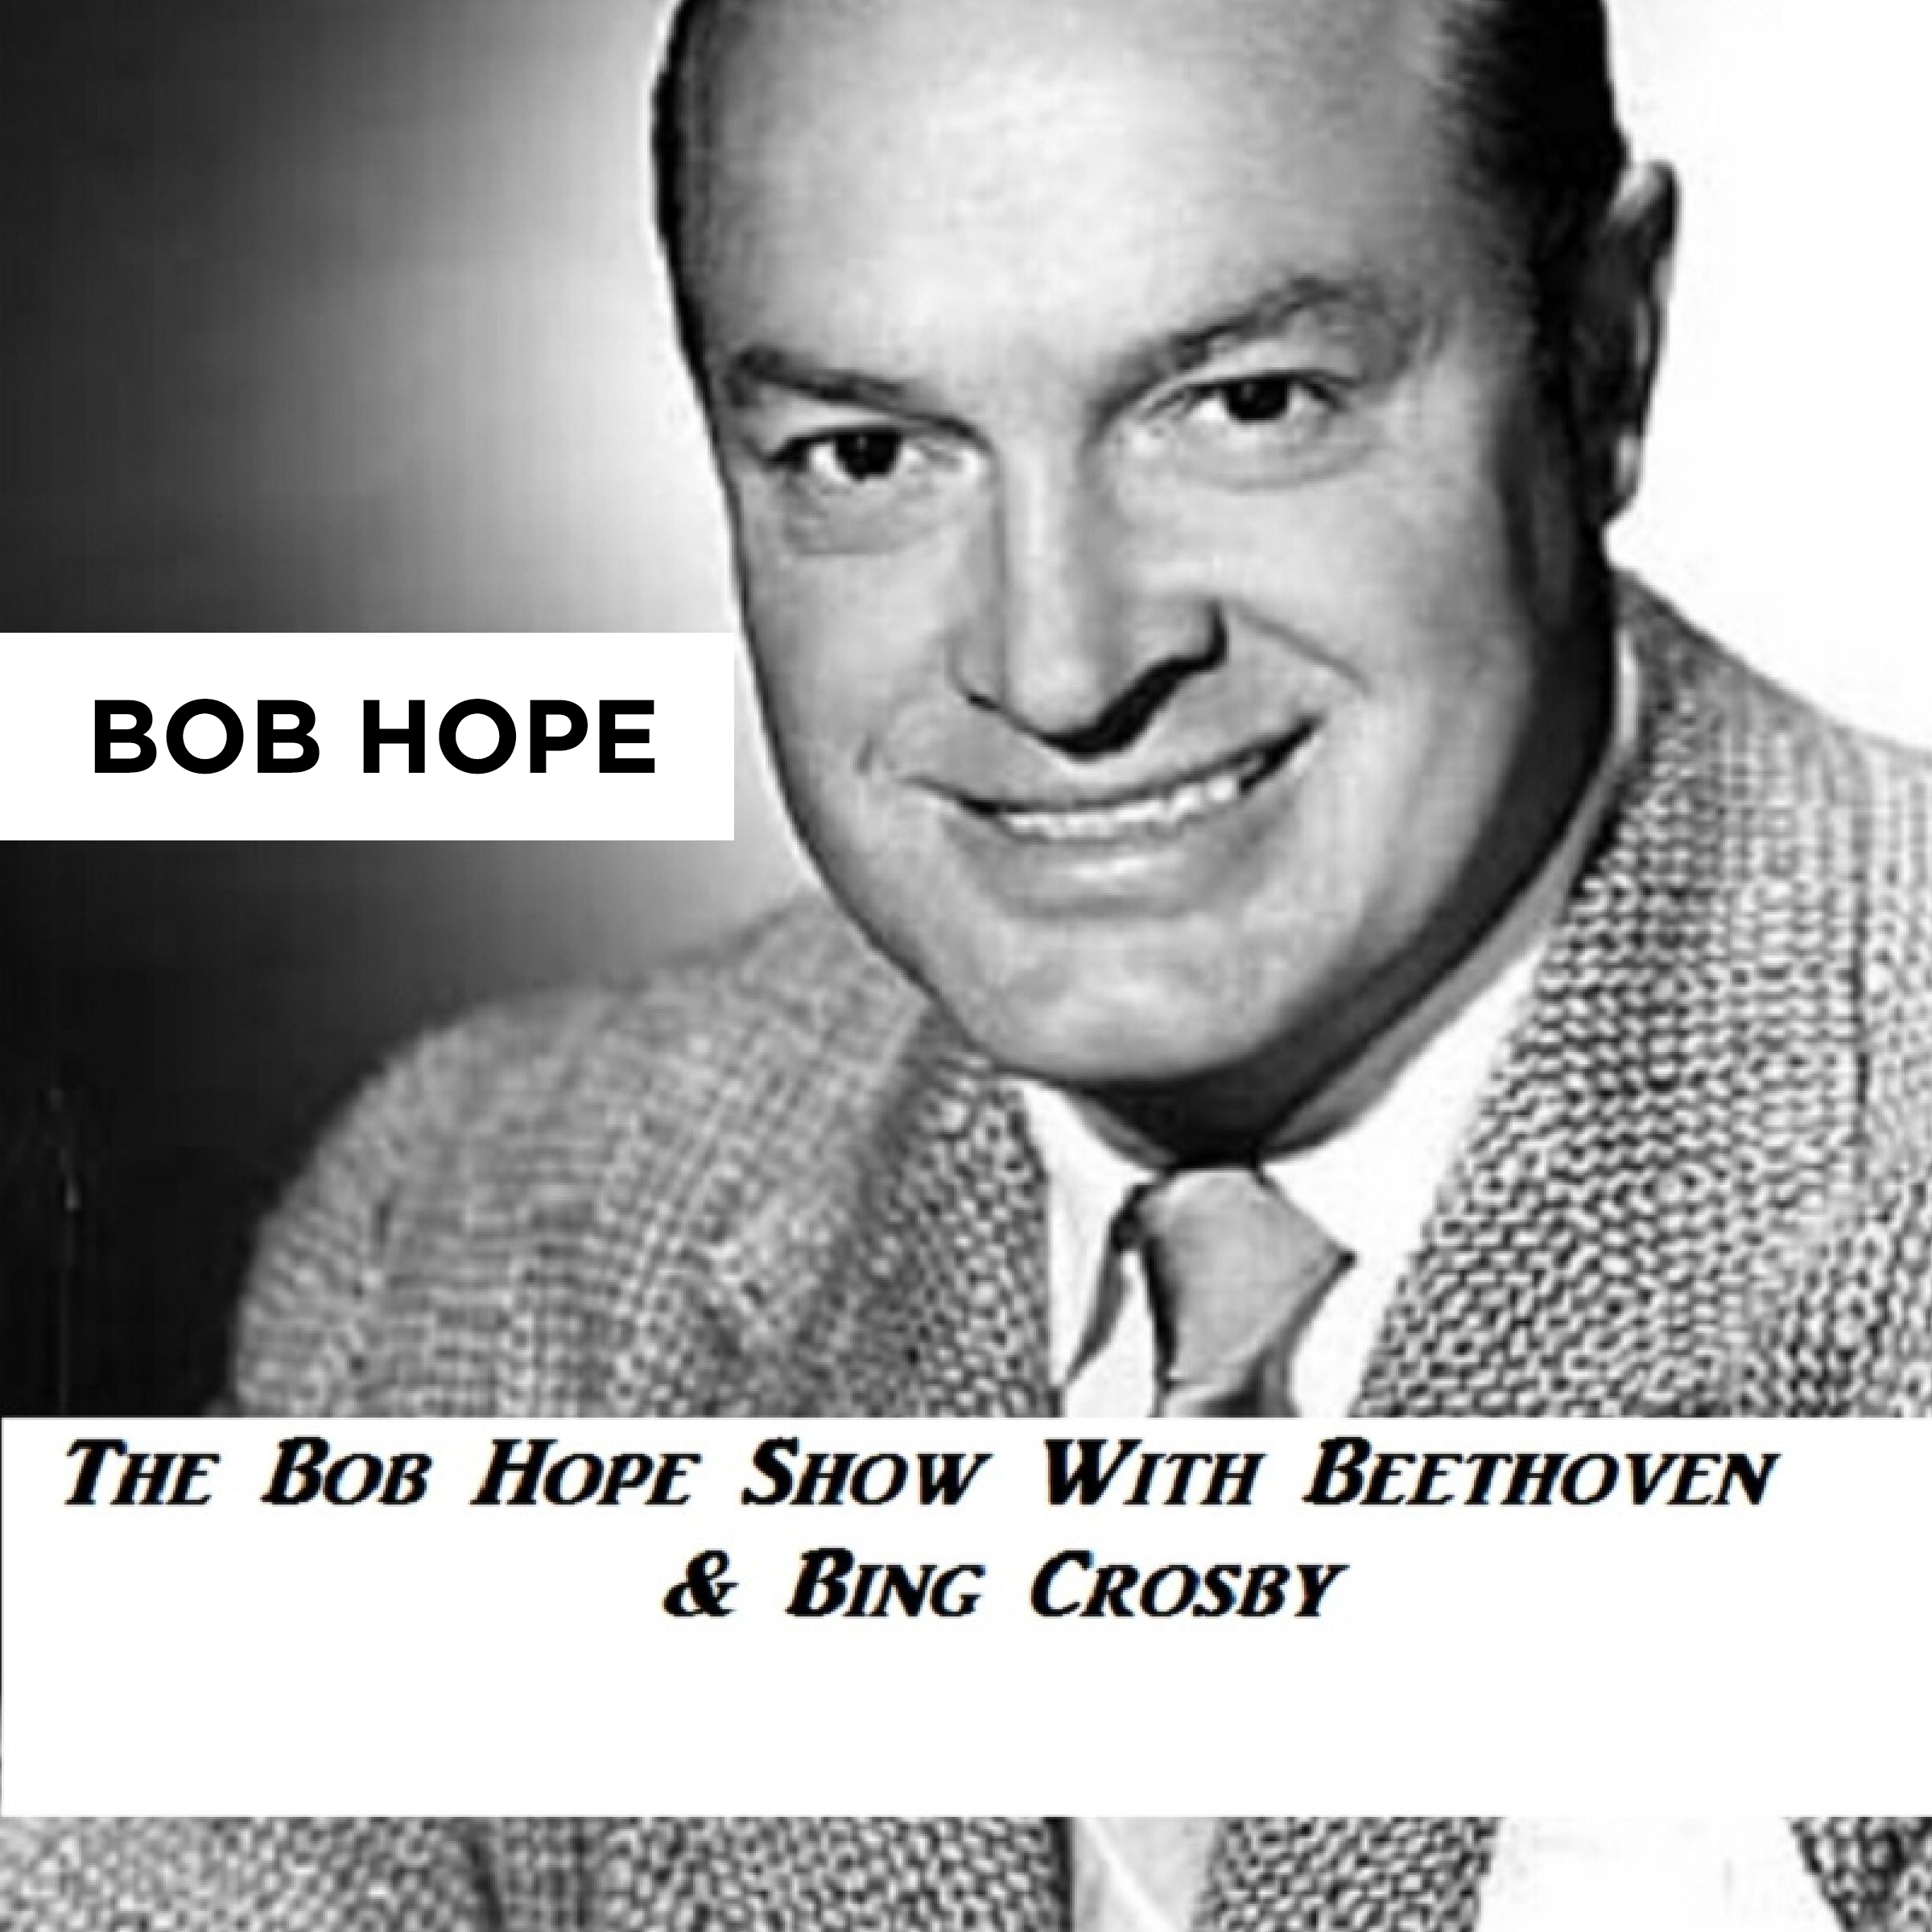 The Bob Hope Show With Beethoven & Bing Crosby Audiobook